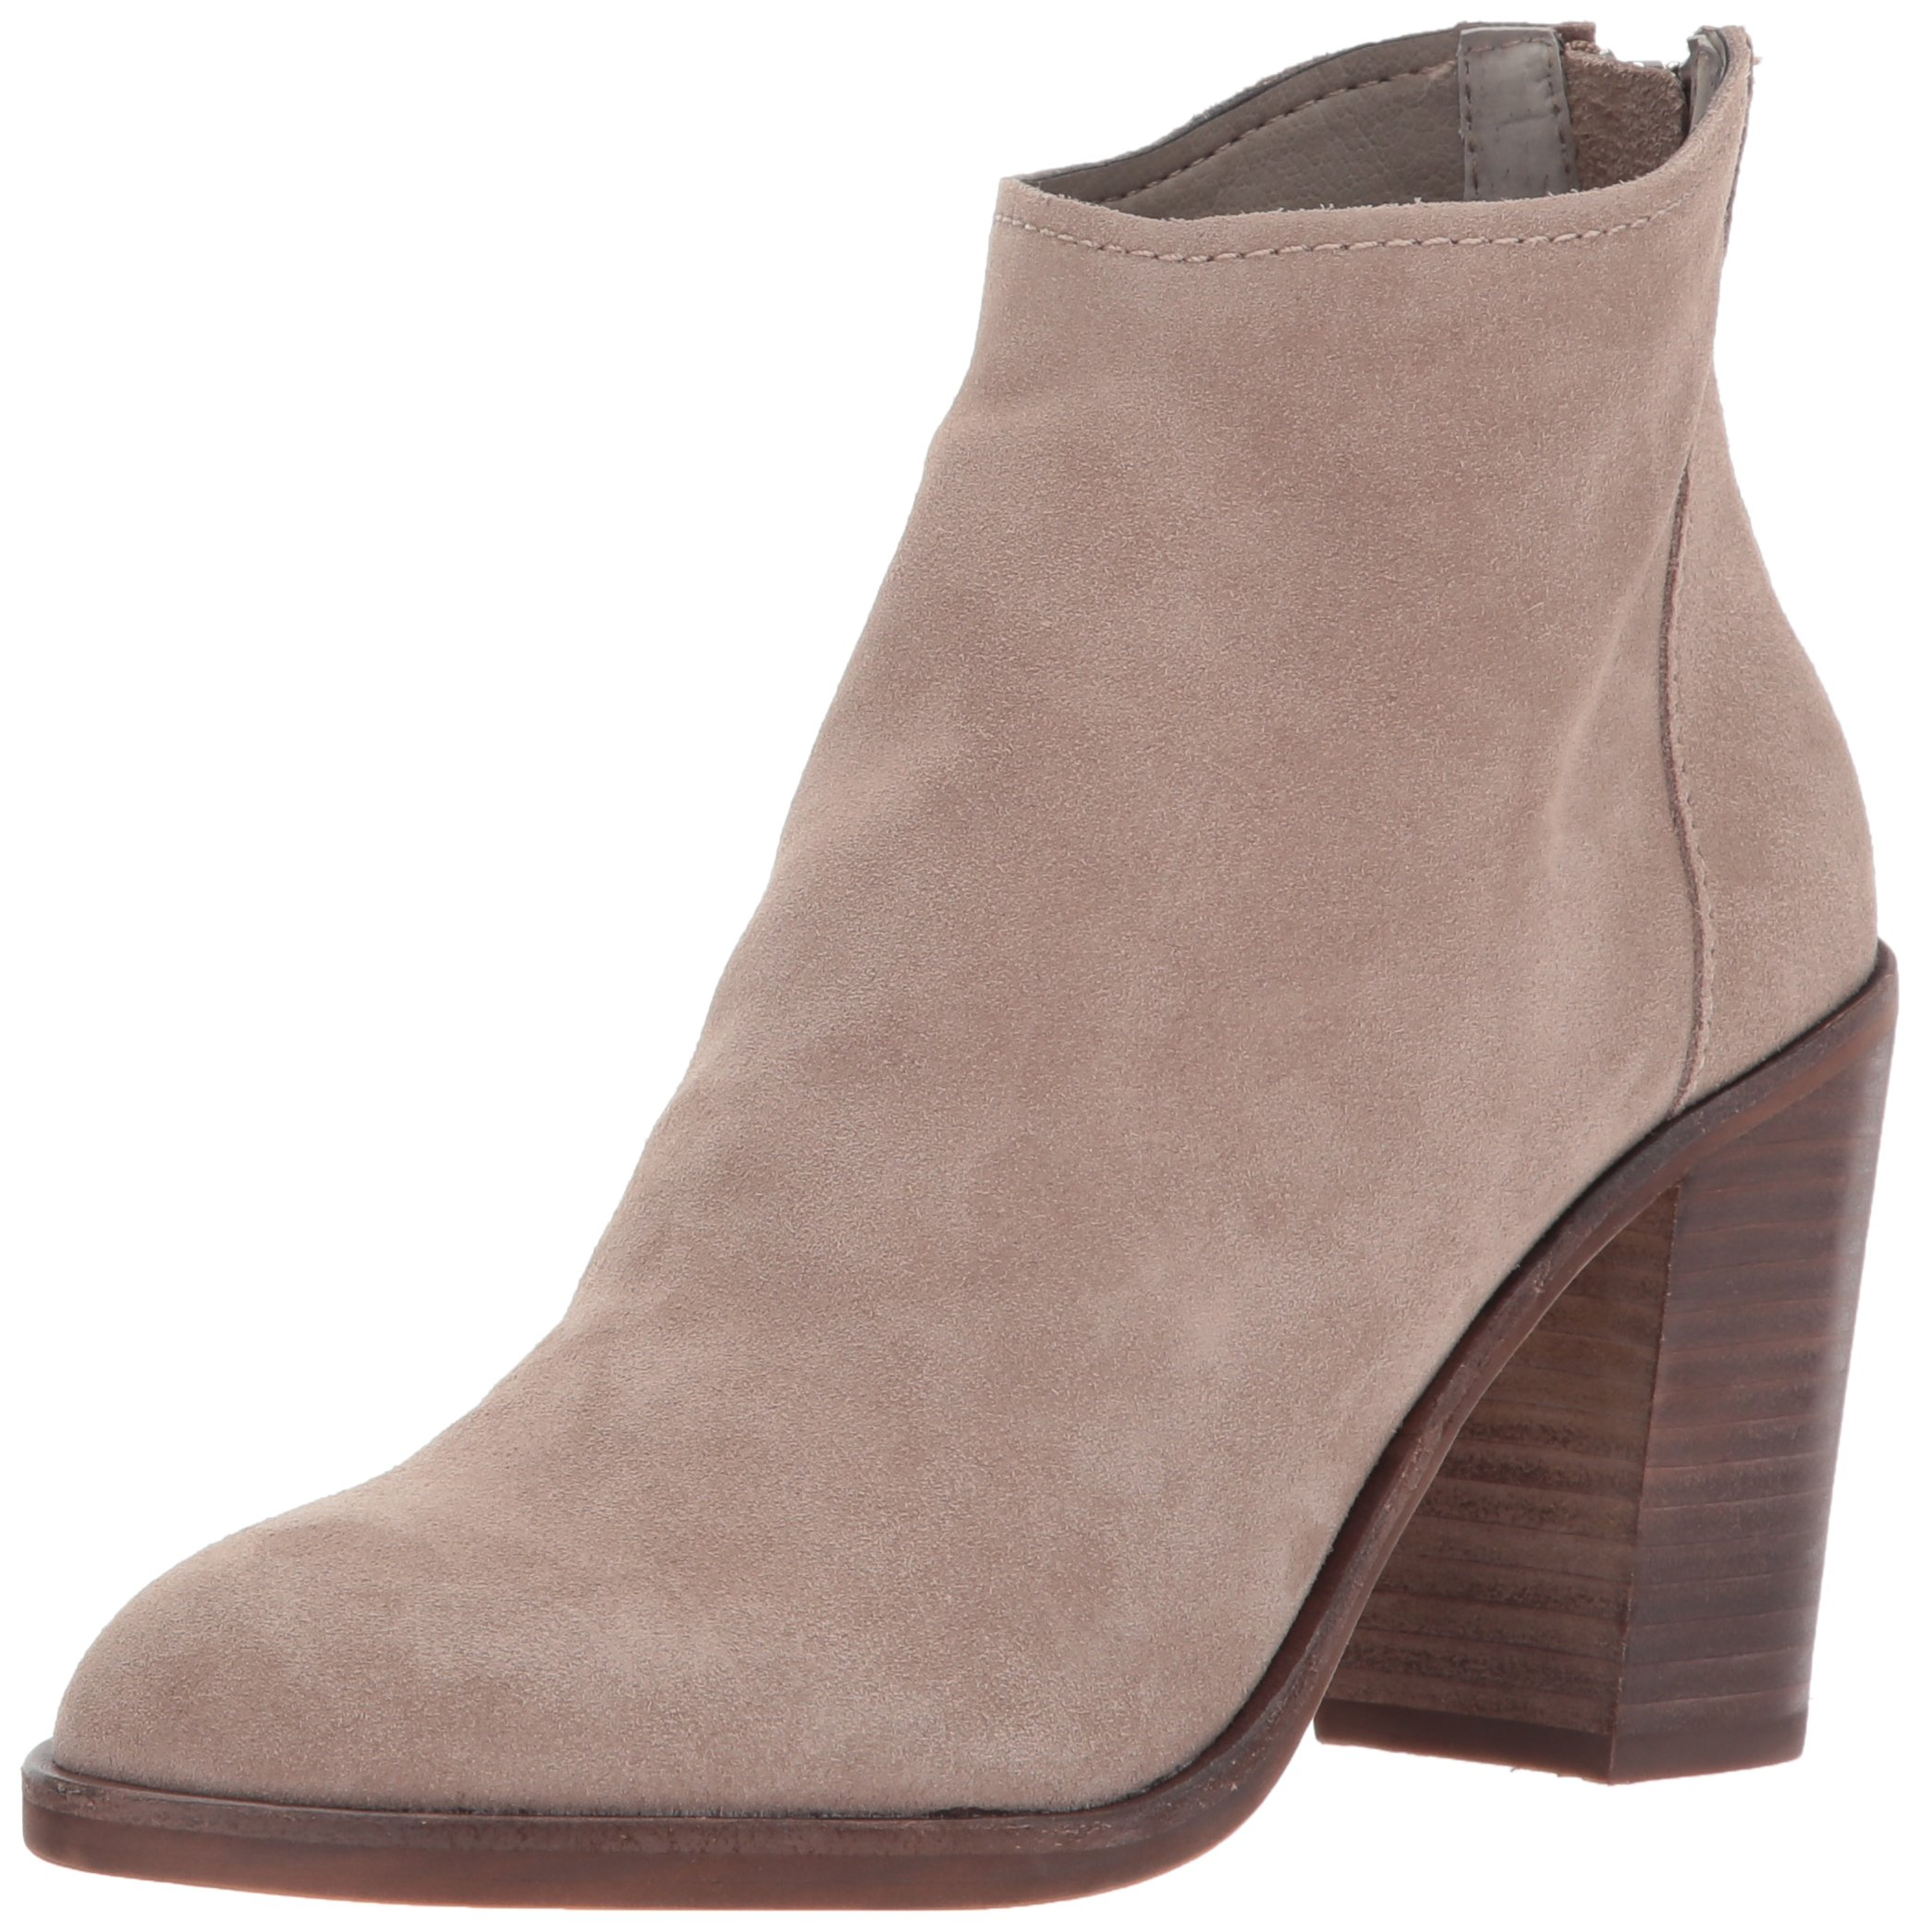 Dolce Vita Women's Stevie Ankle Boot, Taupe Suede, 8.5 Medium US